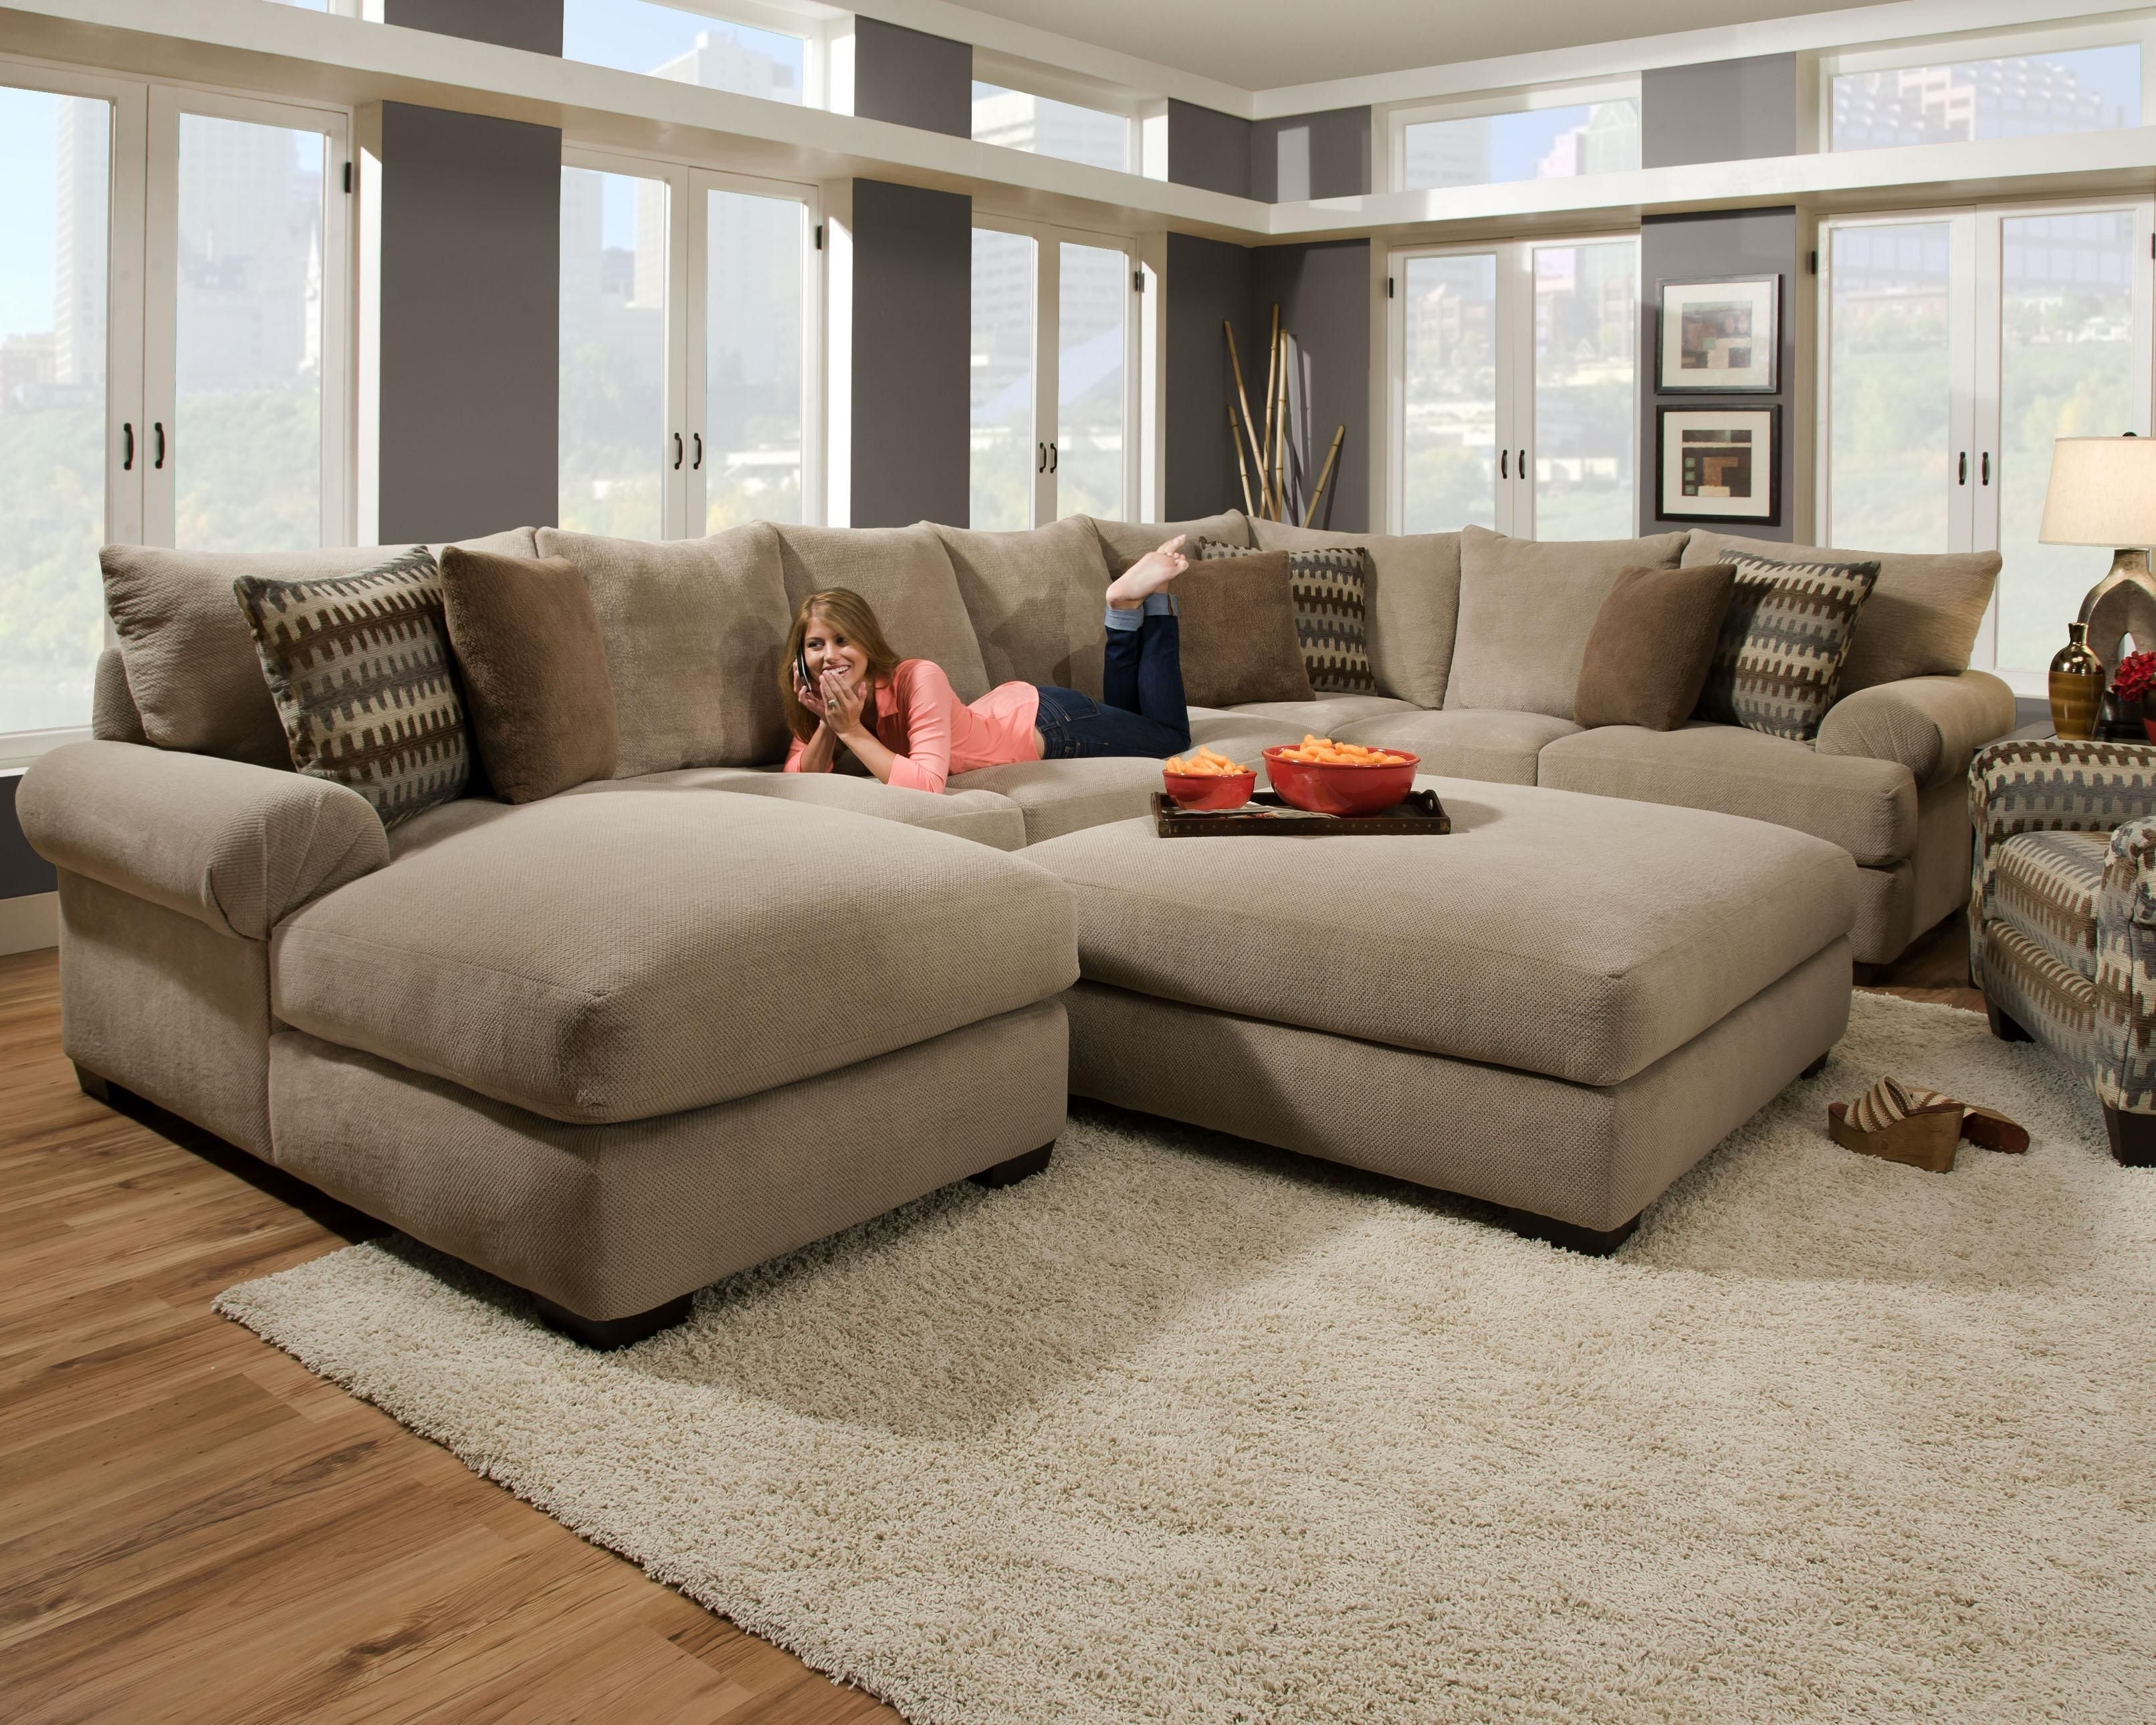 Well Liked Furniture Design Idea For Living Room And Oversized U Shaped Within Deep U Shaped Sectionals (View 20 of 20)